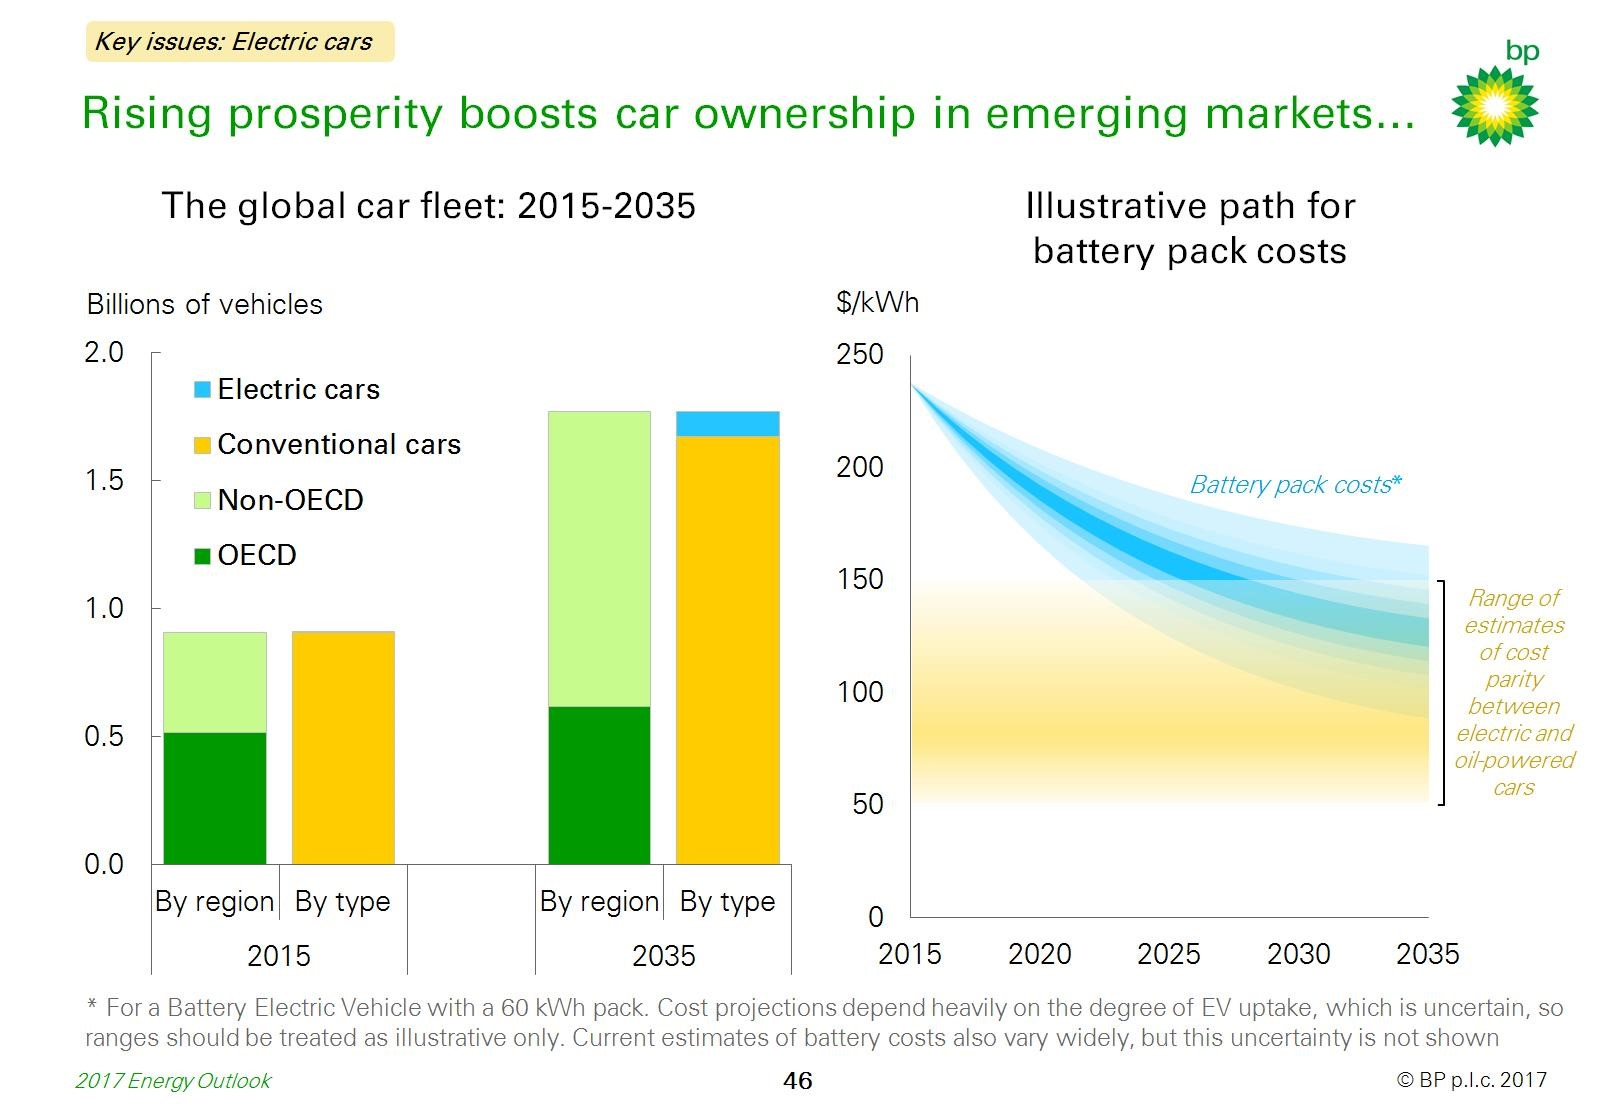 BP's energy outlook: between forecasting and advocacy